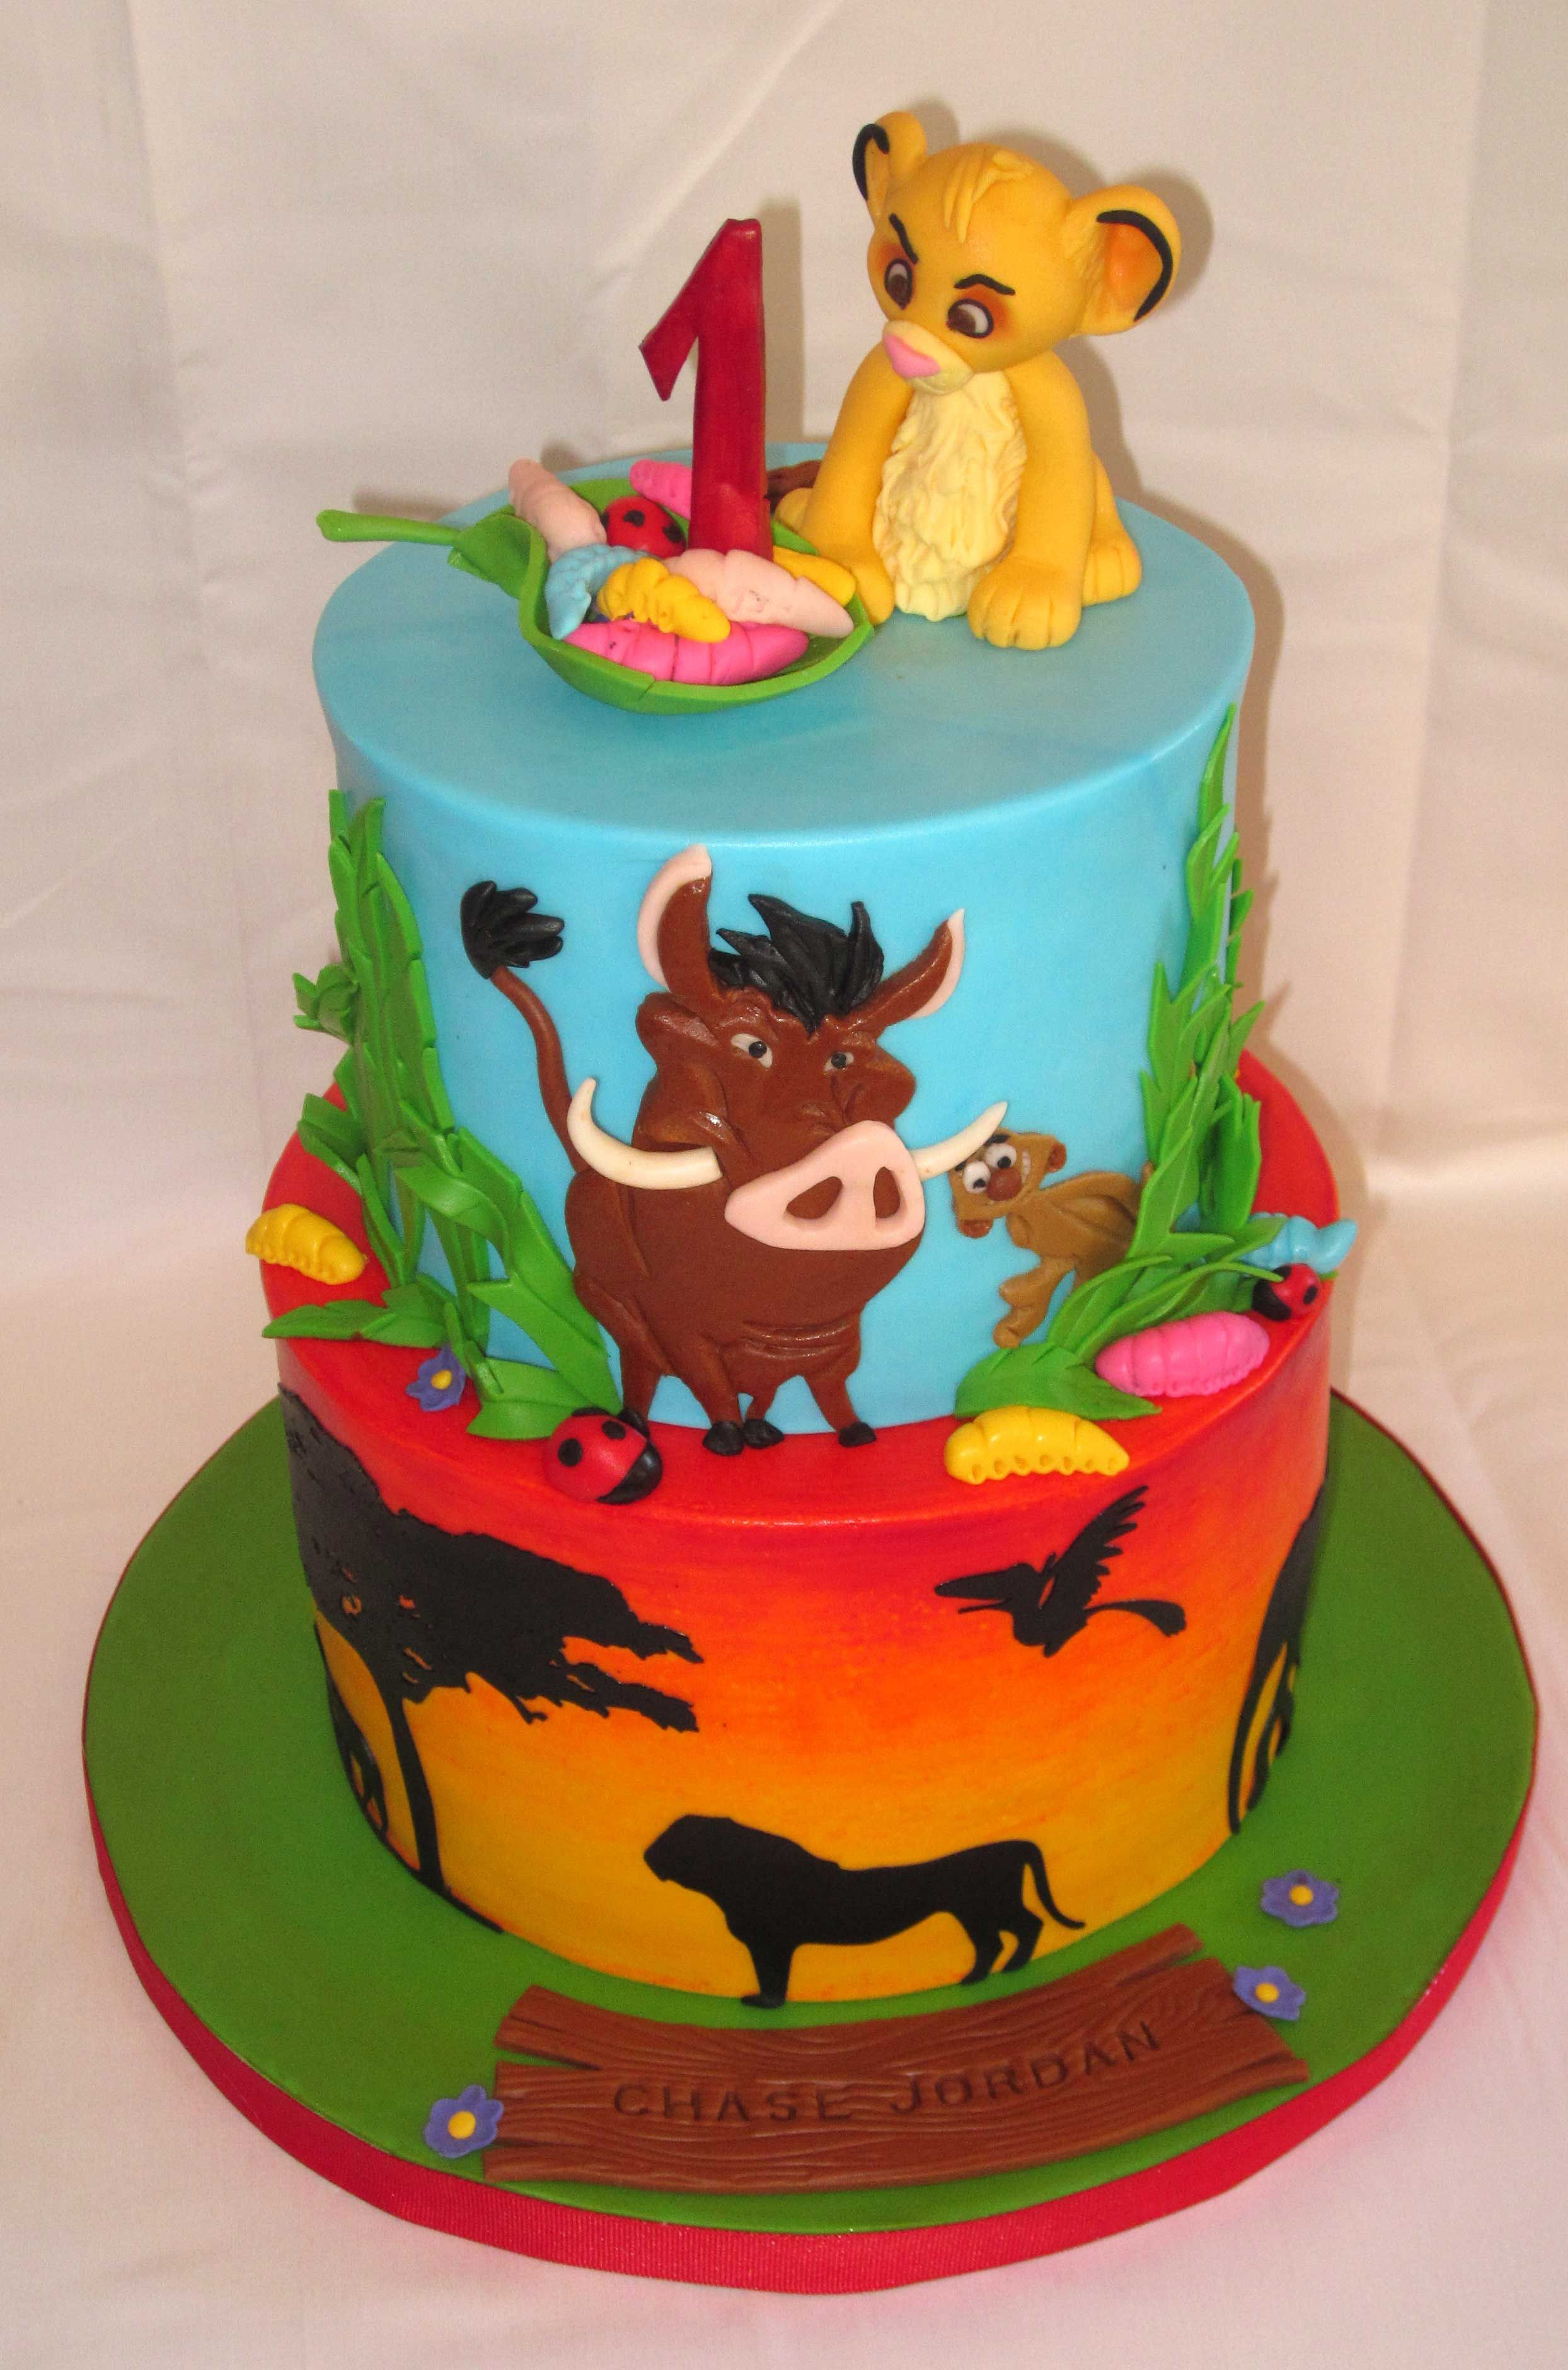 Lion King Rendition of a famous cake by Peggy Does Cakes and came